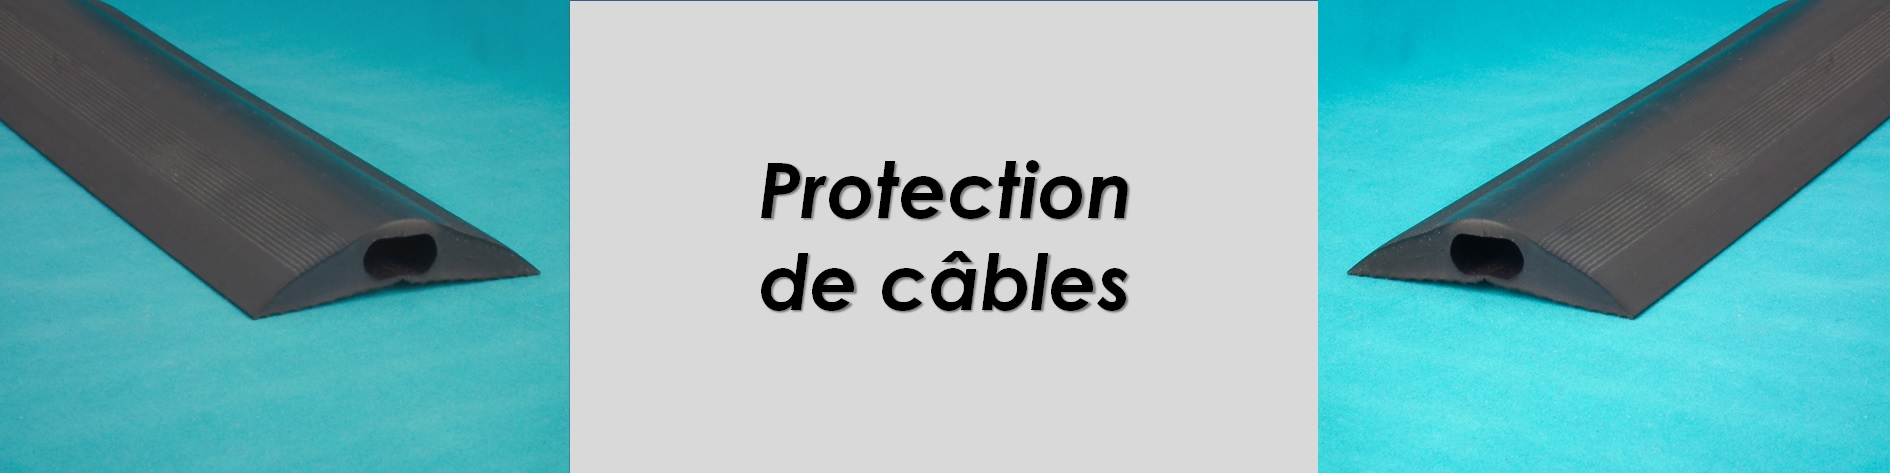 Protection de câbles